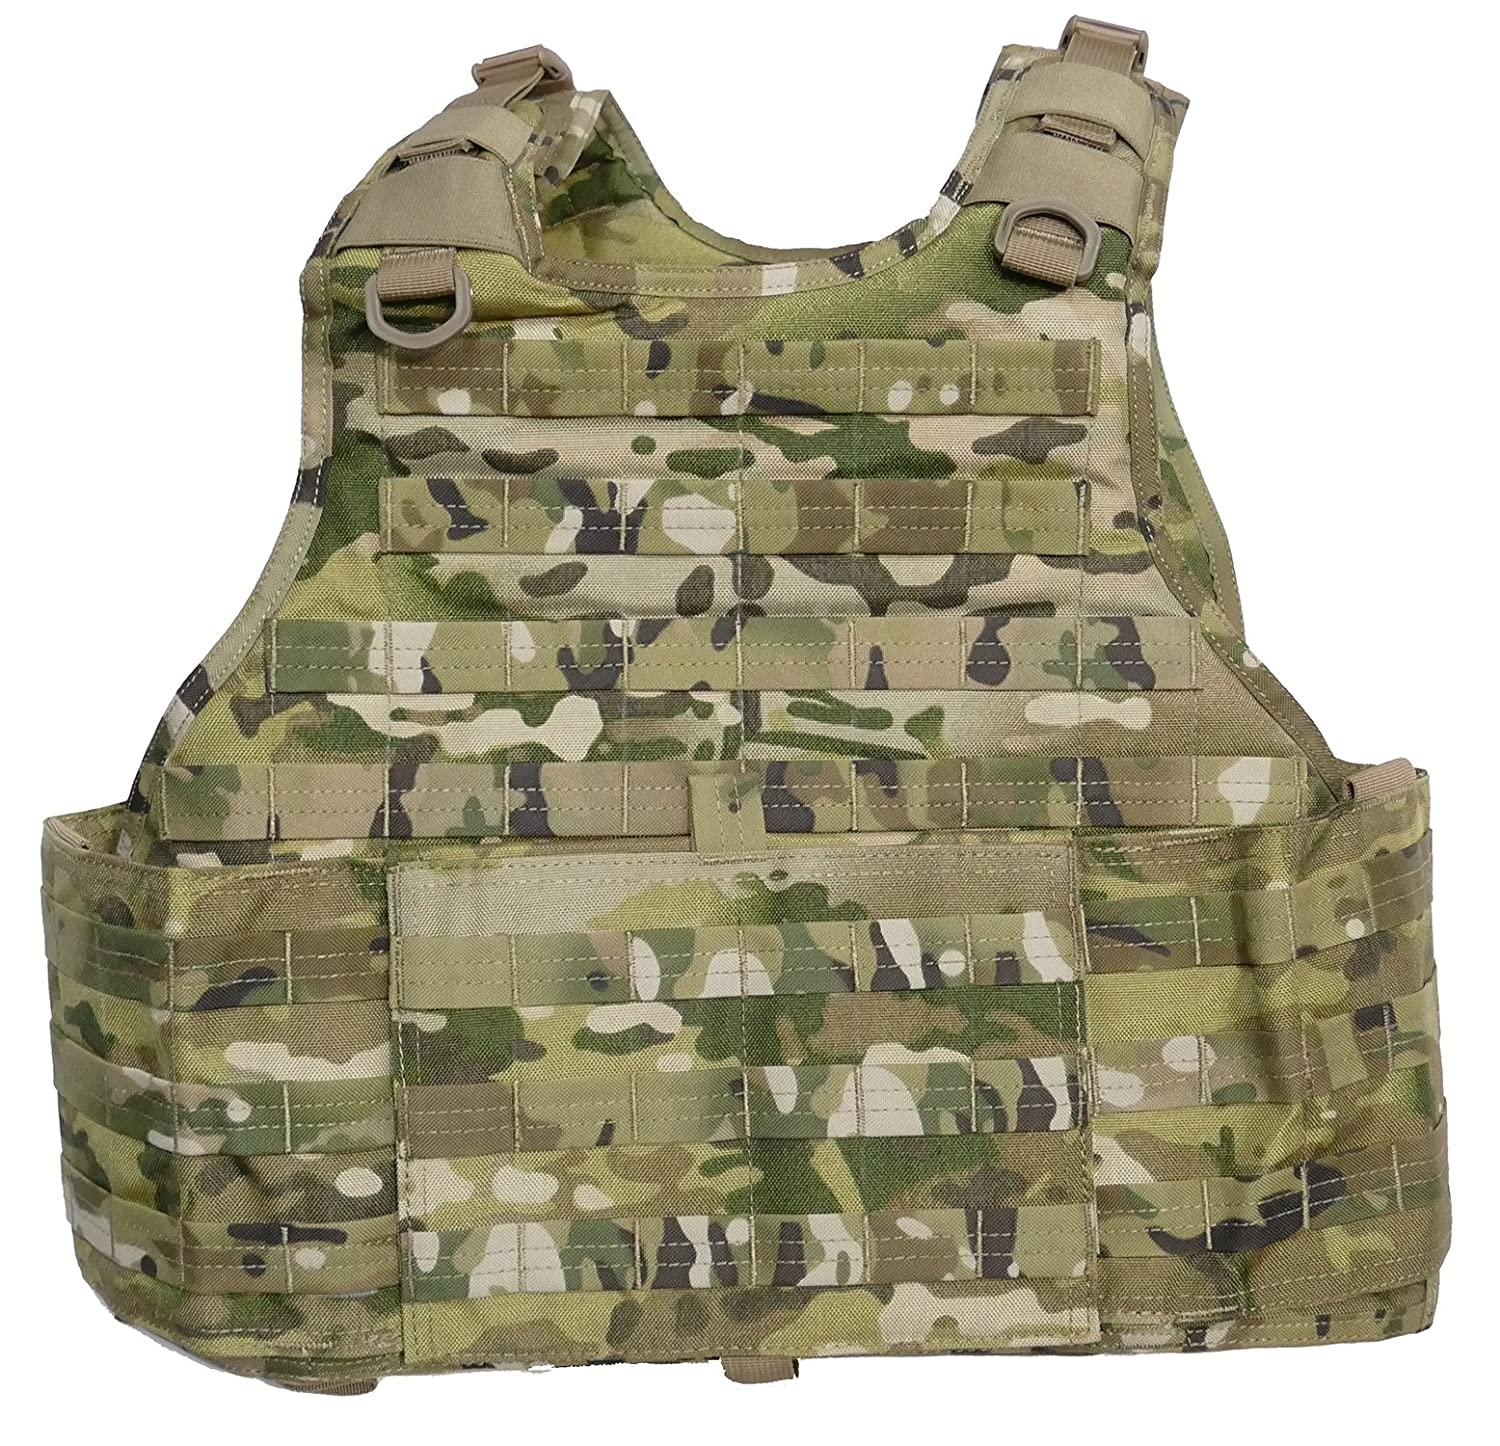 Invader Gear Tactical Dacc Vest Plate Carrier Atp